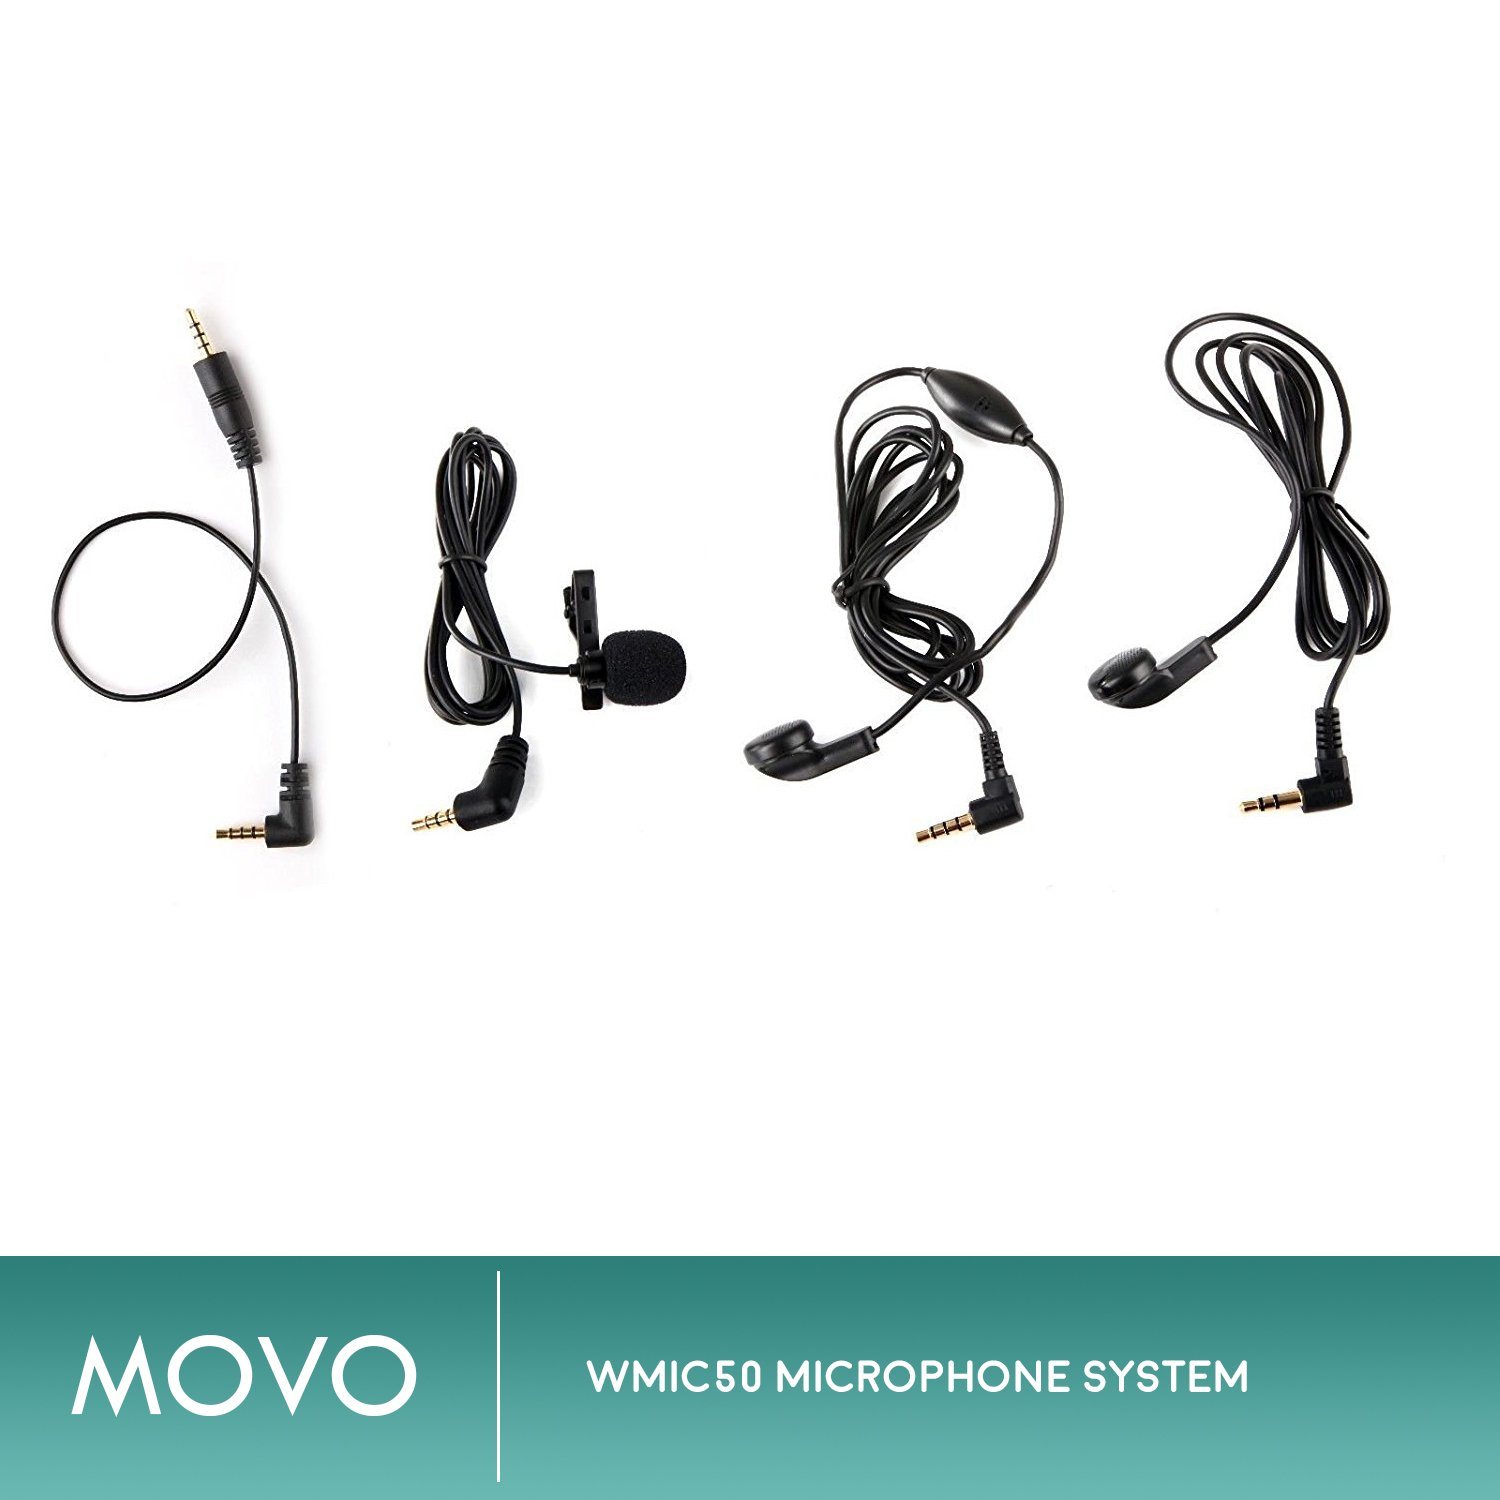 Movo WMIC50 2.4GHz Wireless Lavalier Microphone System with Integrated 164-foot Range Antenna (Includes Transmitter with Belt Clip, Receiver with Camera Shoe, Lavalier and 2 Earphones) by Movo (Image #6)